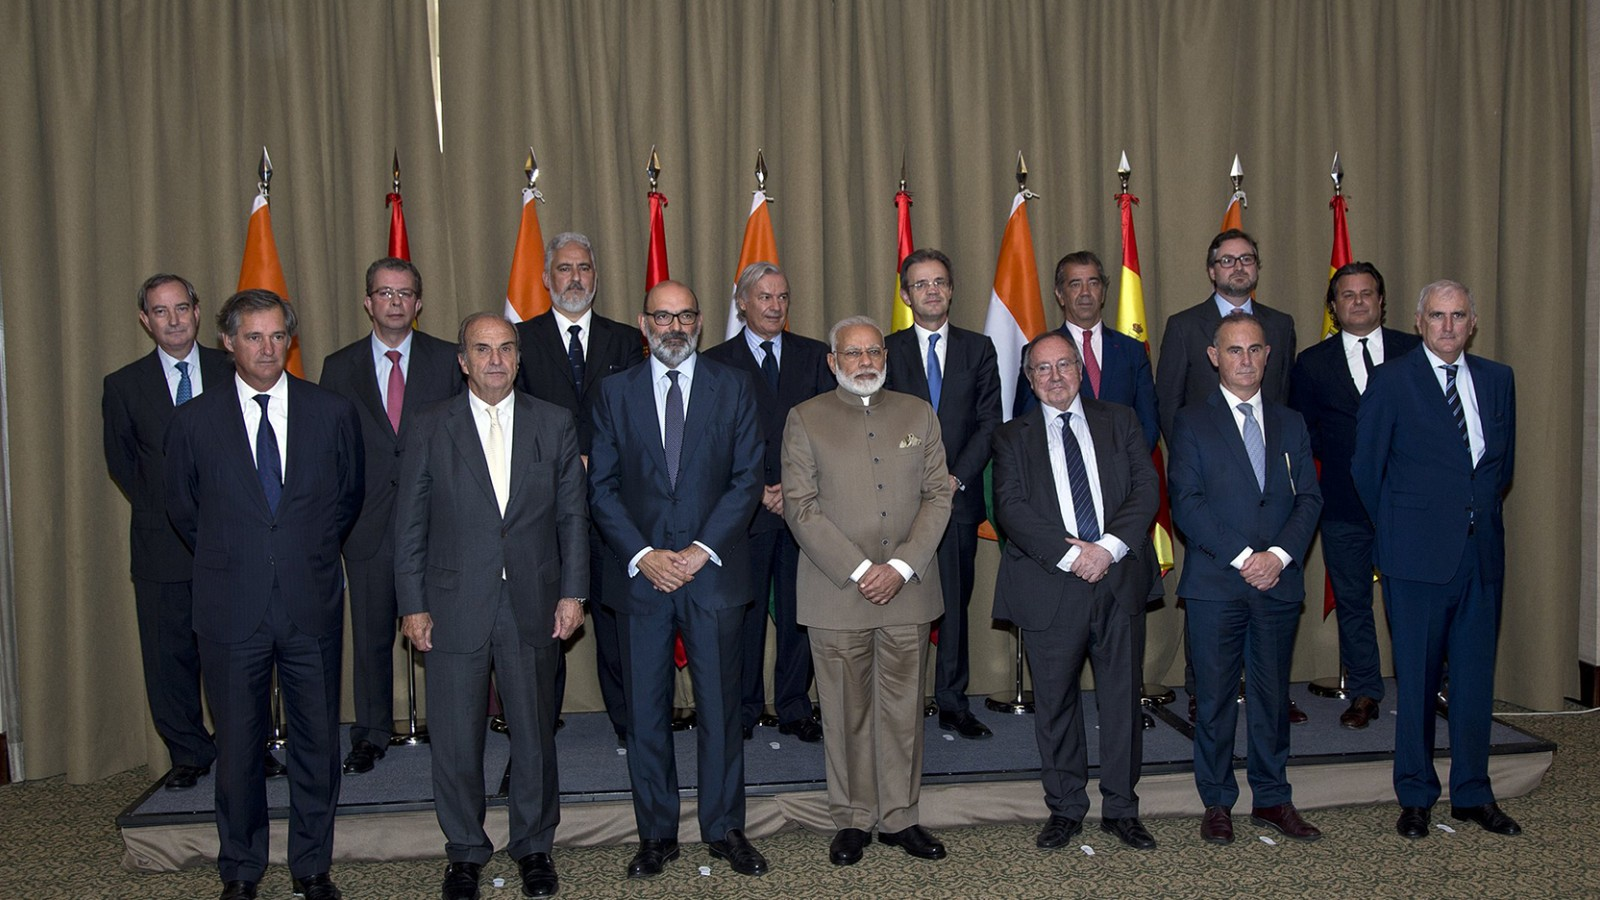 SICF participates in a private meeting with Narendra Modi